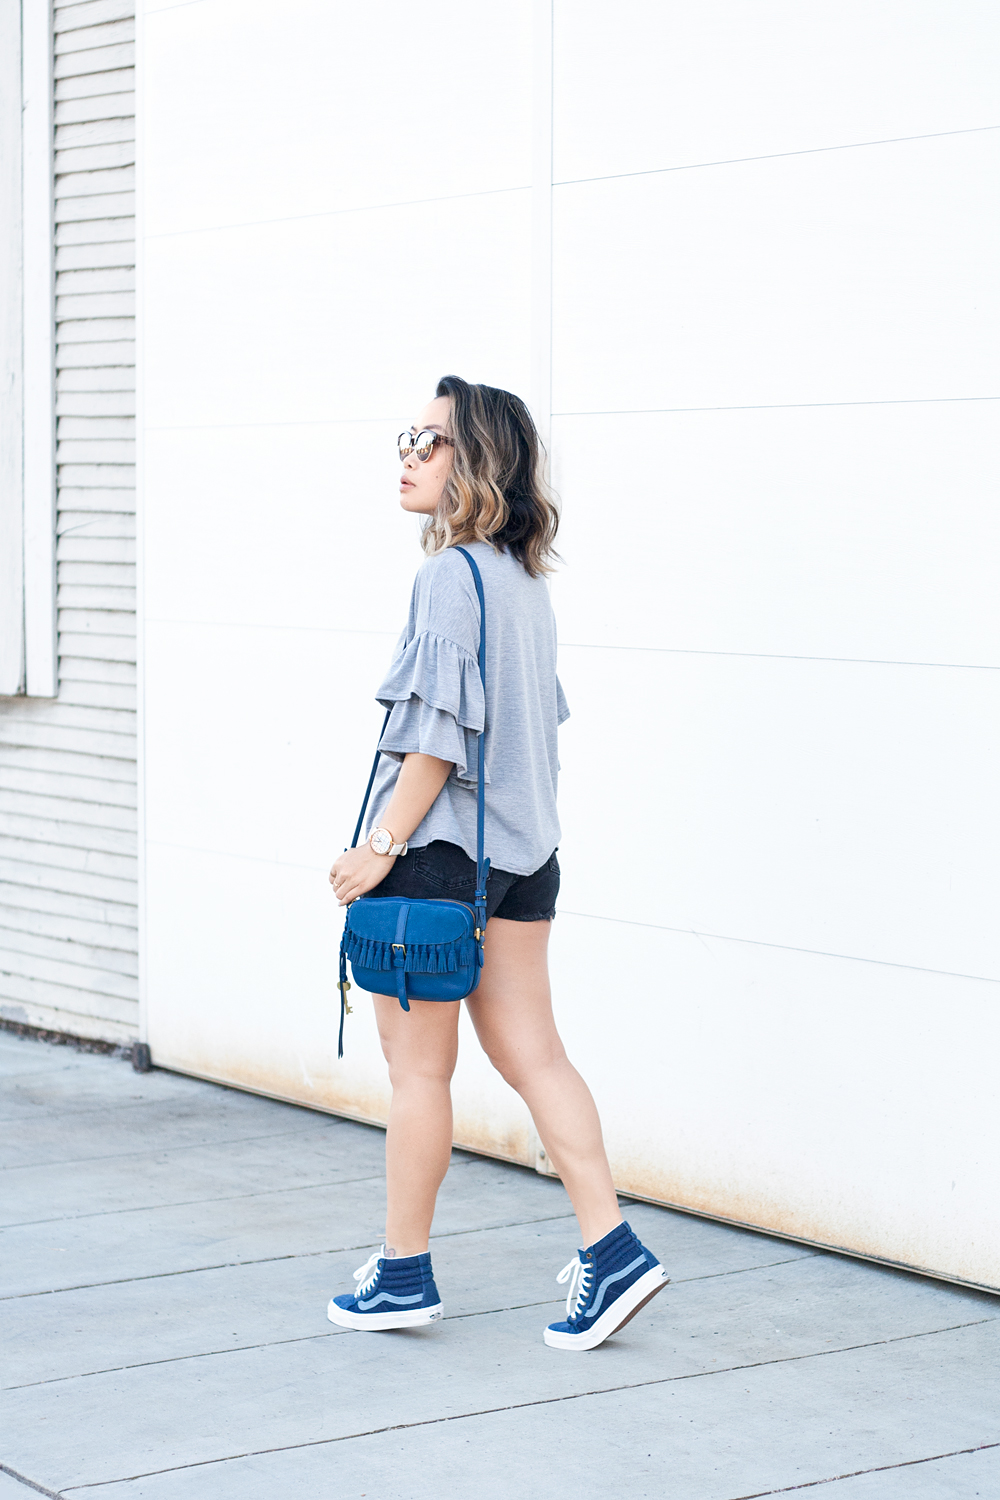 06fossil-blue-madewell-vans-denim-sf-fashion-style